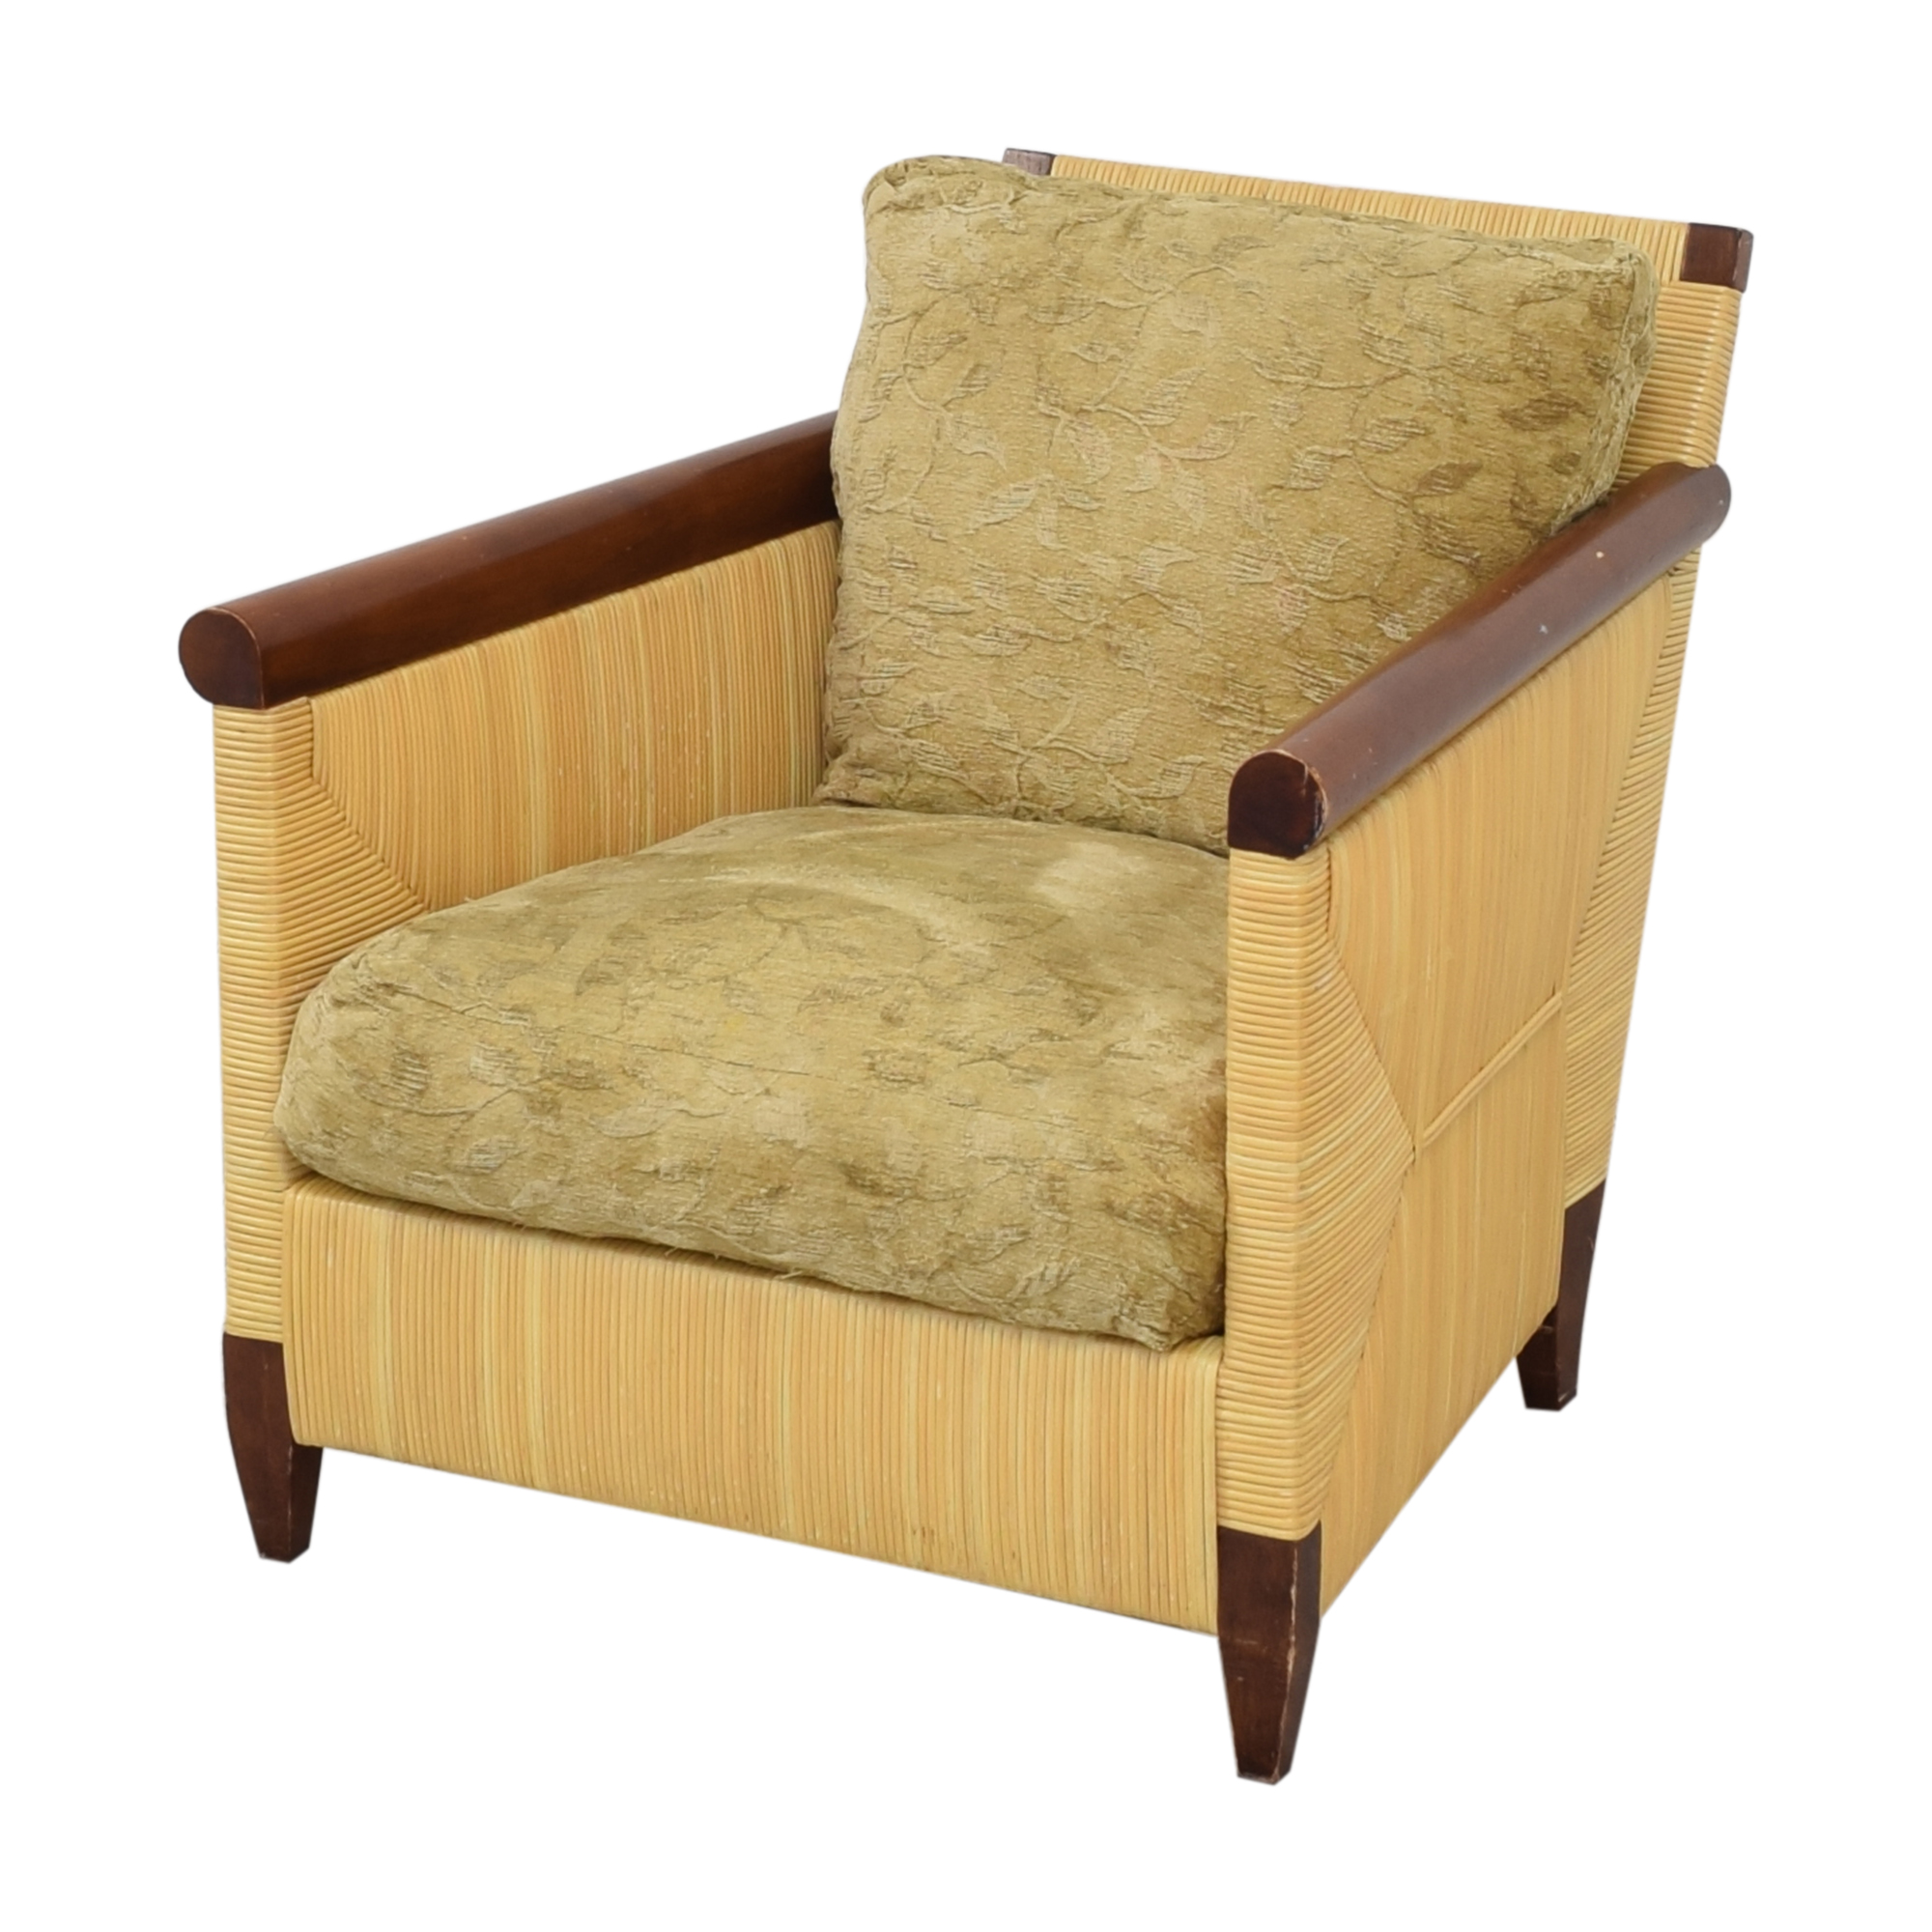 Donghia by John Hutton Mahogany and Wicker Lounger sale